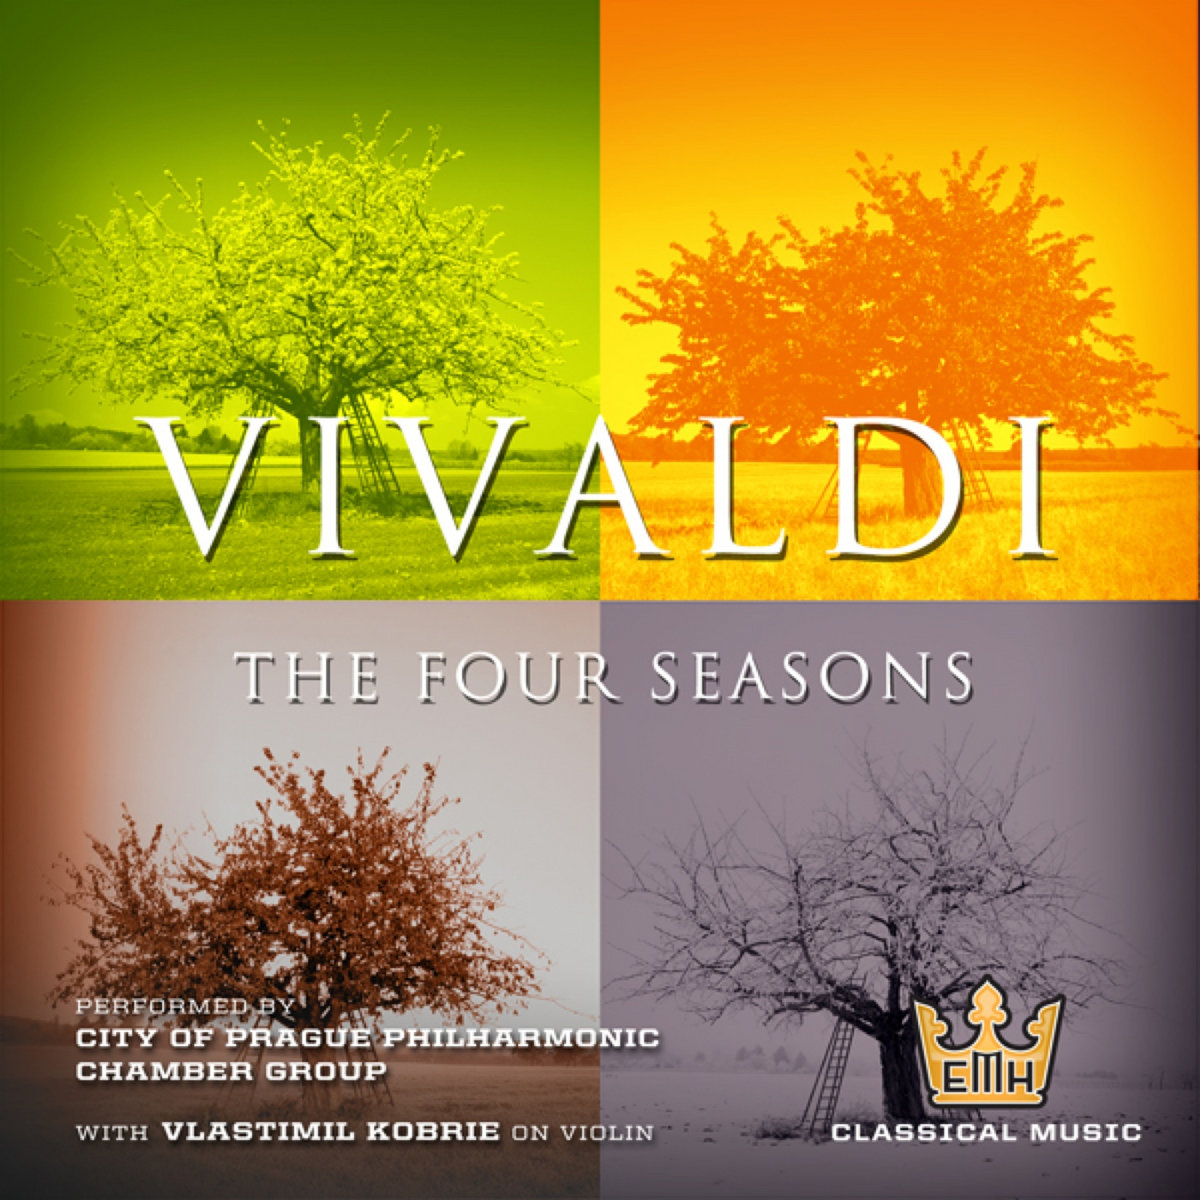 4 Seasons Group vivaldi - the 4 seasons | emh classical music